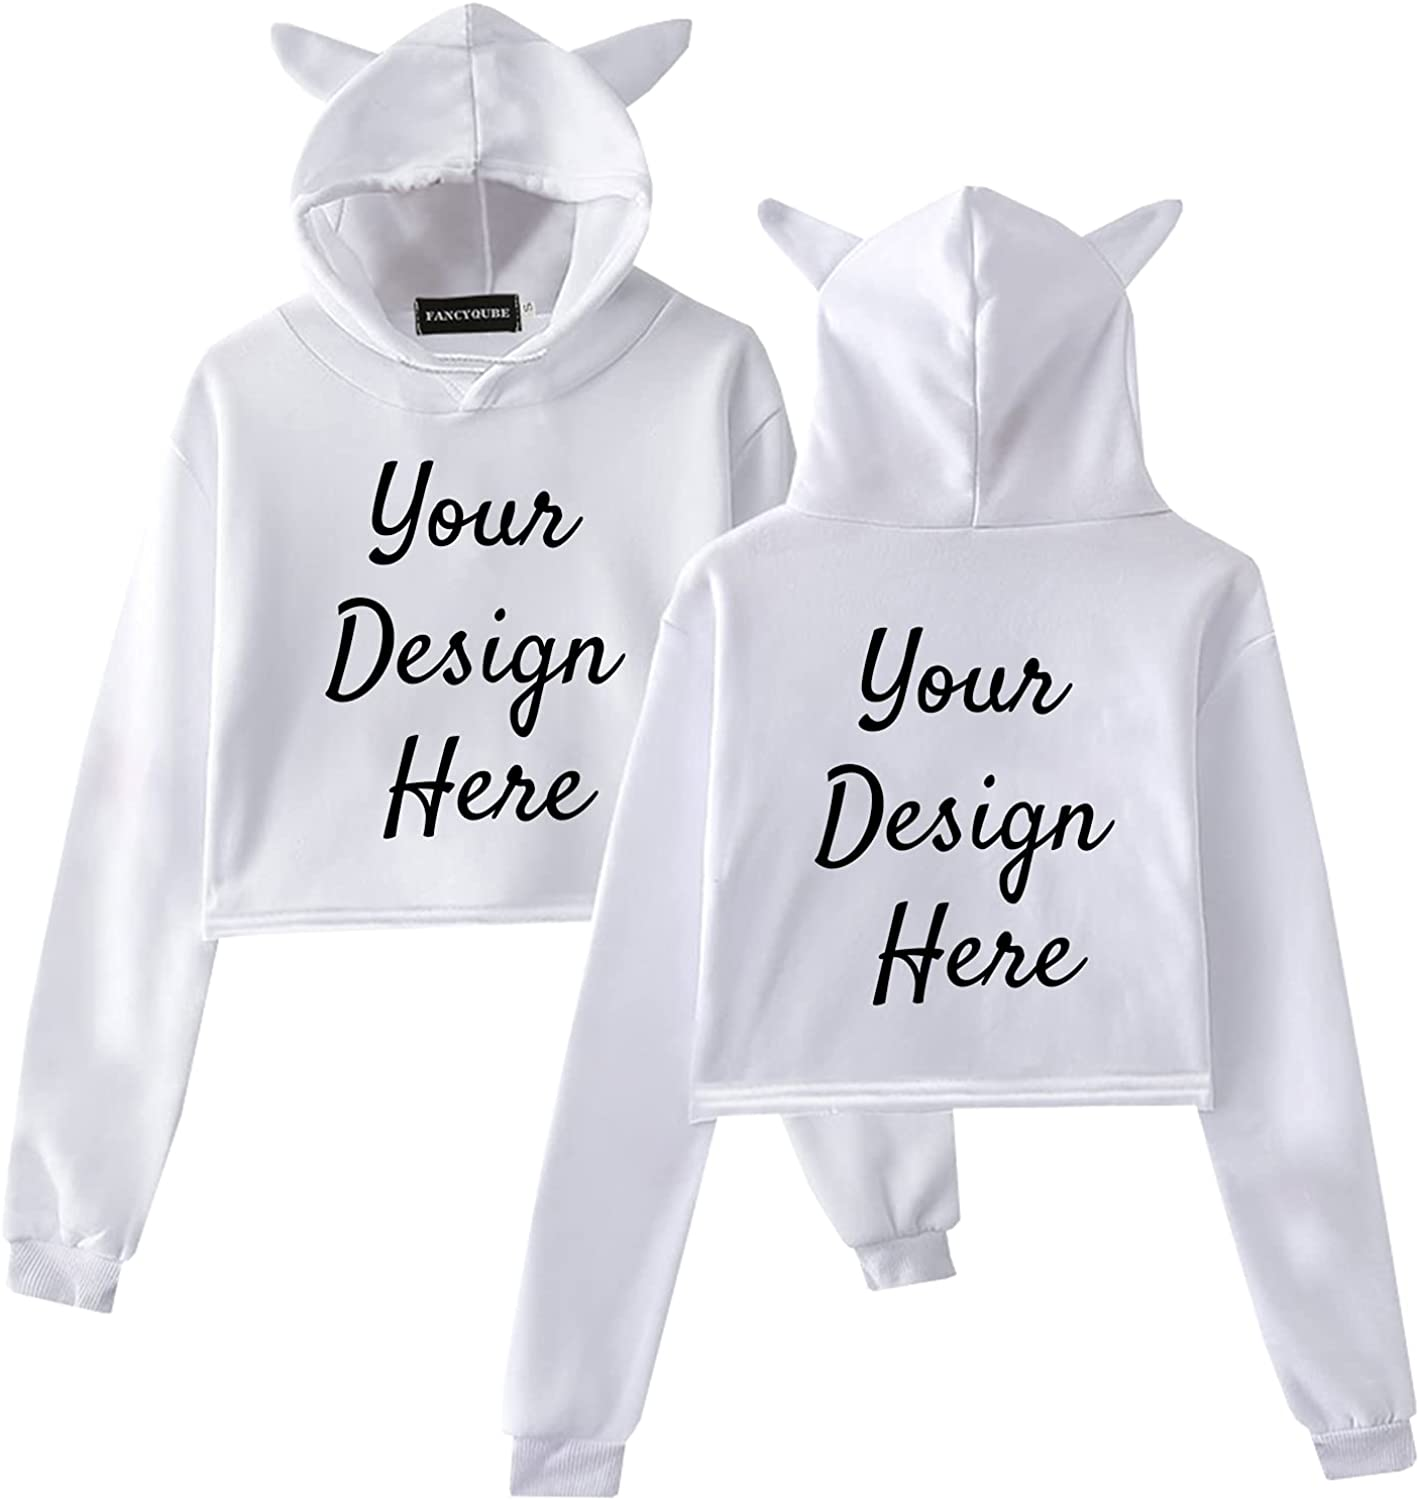 SWIMFUN Customized Women Hoodie, Long Sleeve Sweatshirt, Casual Loose Crop Top, Printed Front &Back With Image/Text